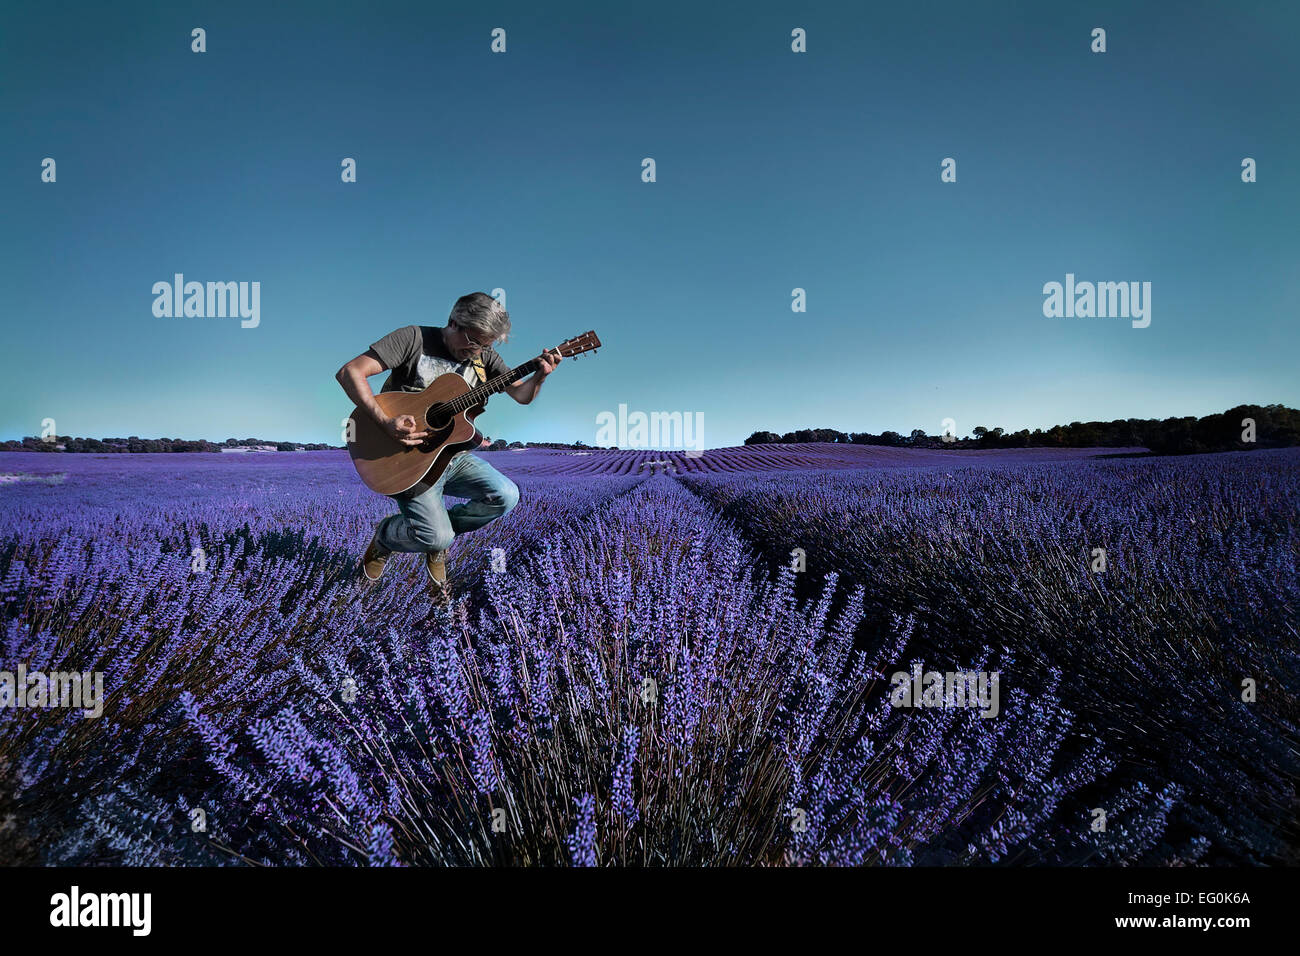 Man playing guitar in lavender field Photo Stock